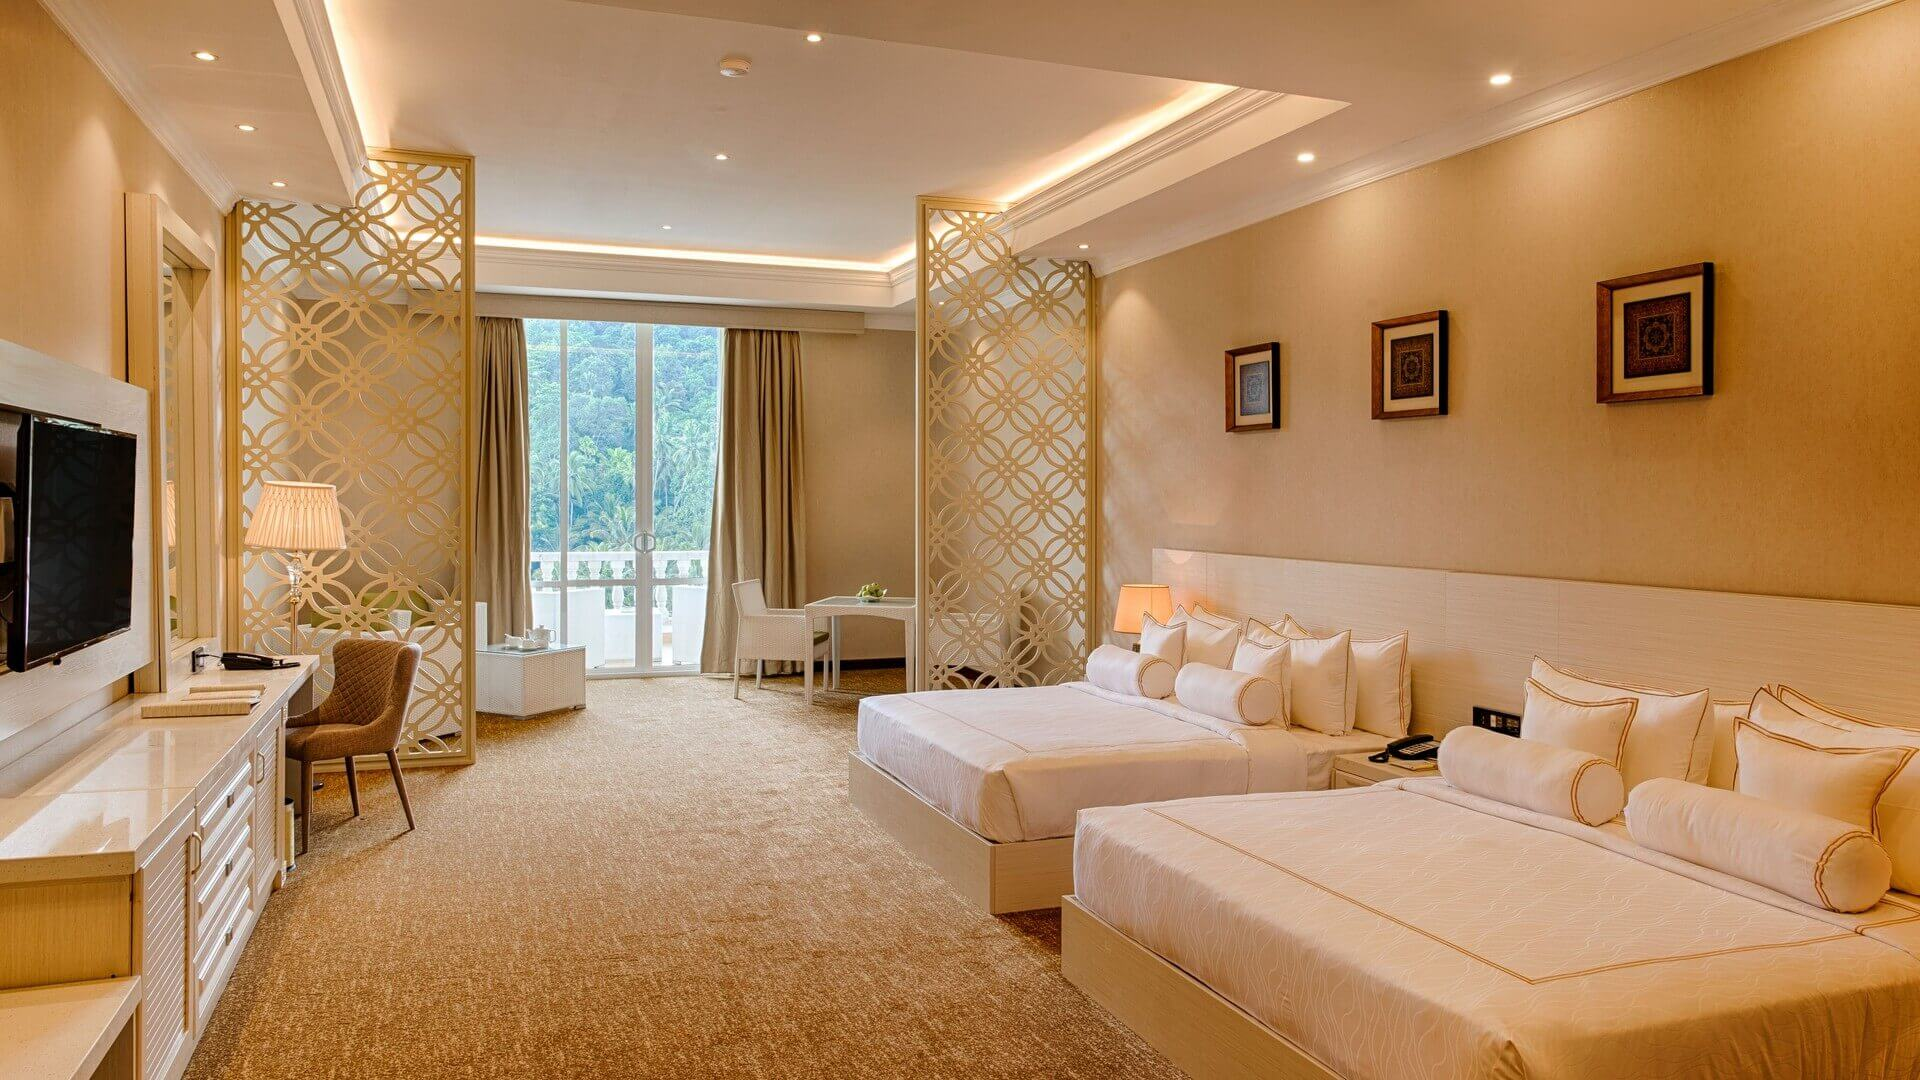 The Golden Crown Hotel - Premier Suite